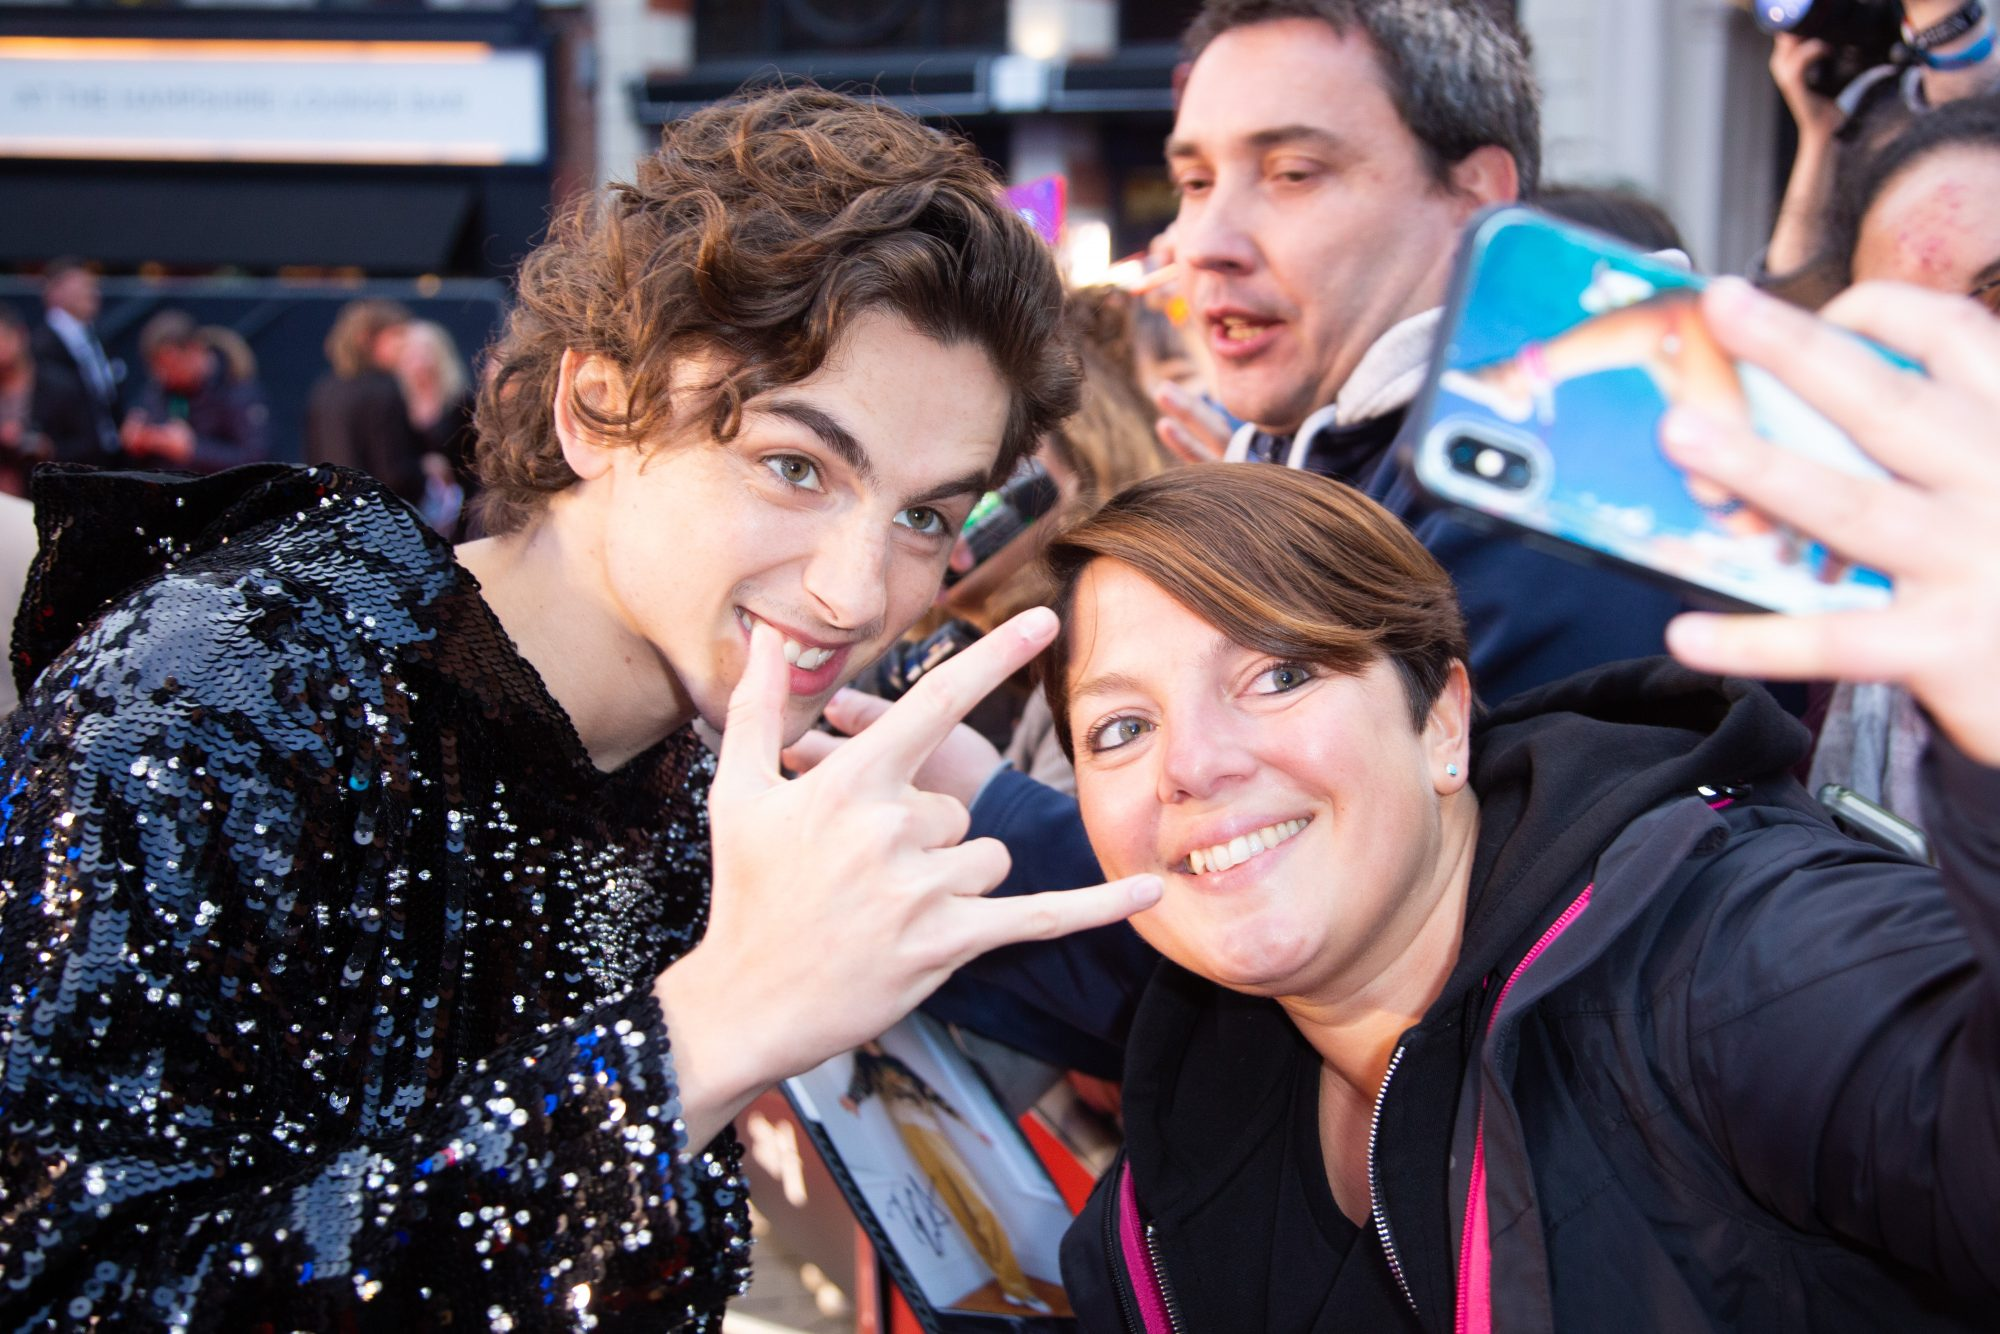 Timothee Chalamet at The King UK Premiere during the 63rd BFI London Film Festival at Odeon Luxe Leicester Square on 3rd October 2019.  Photos: Netflix